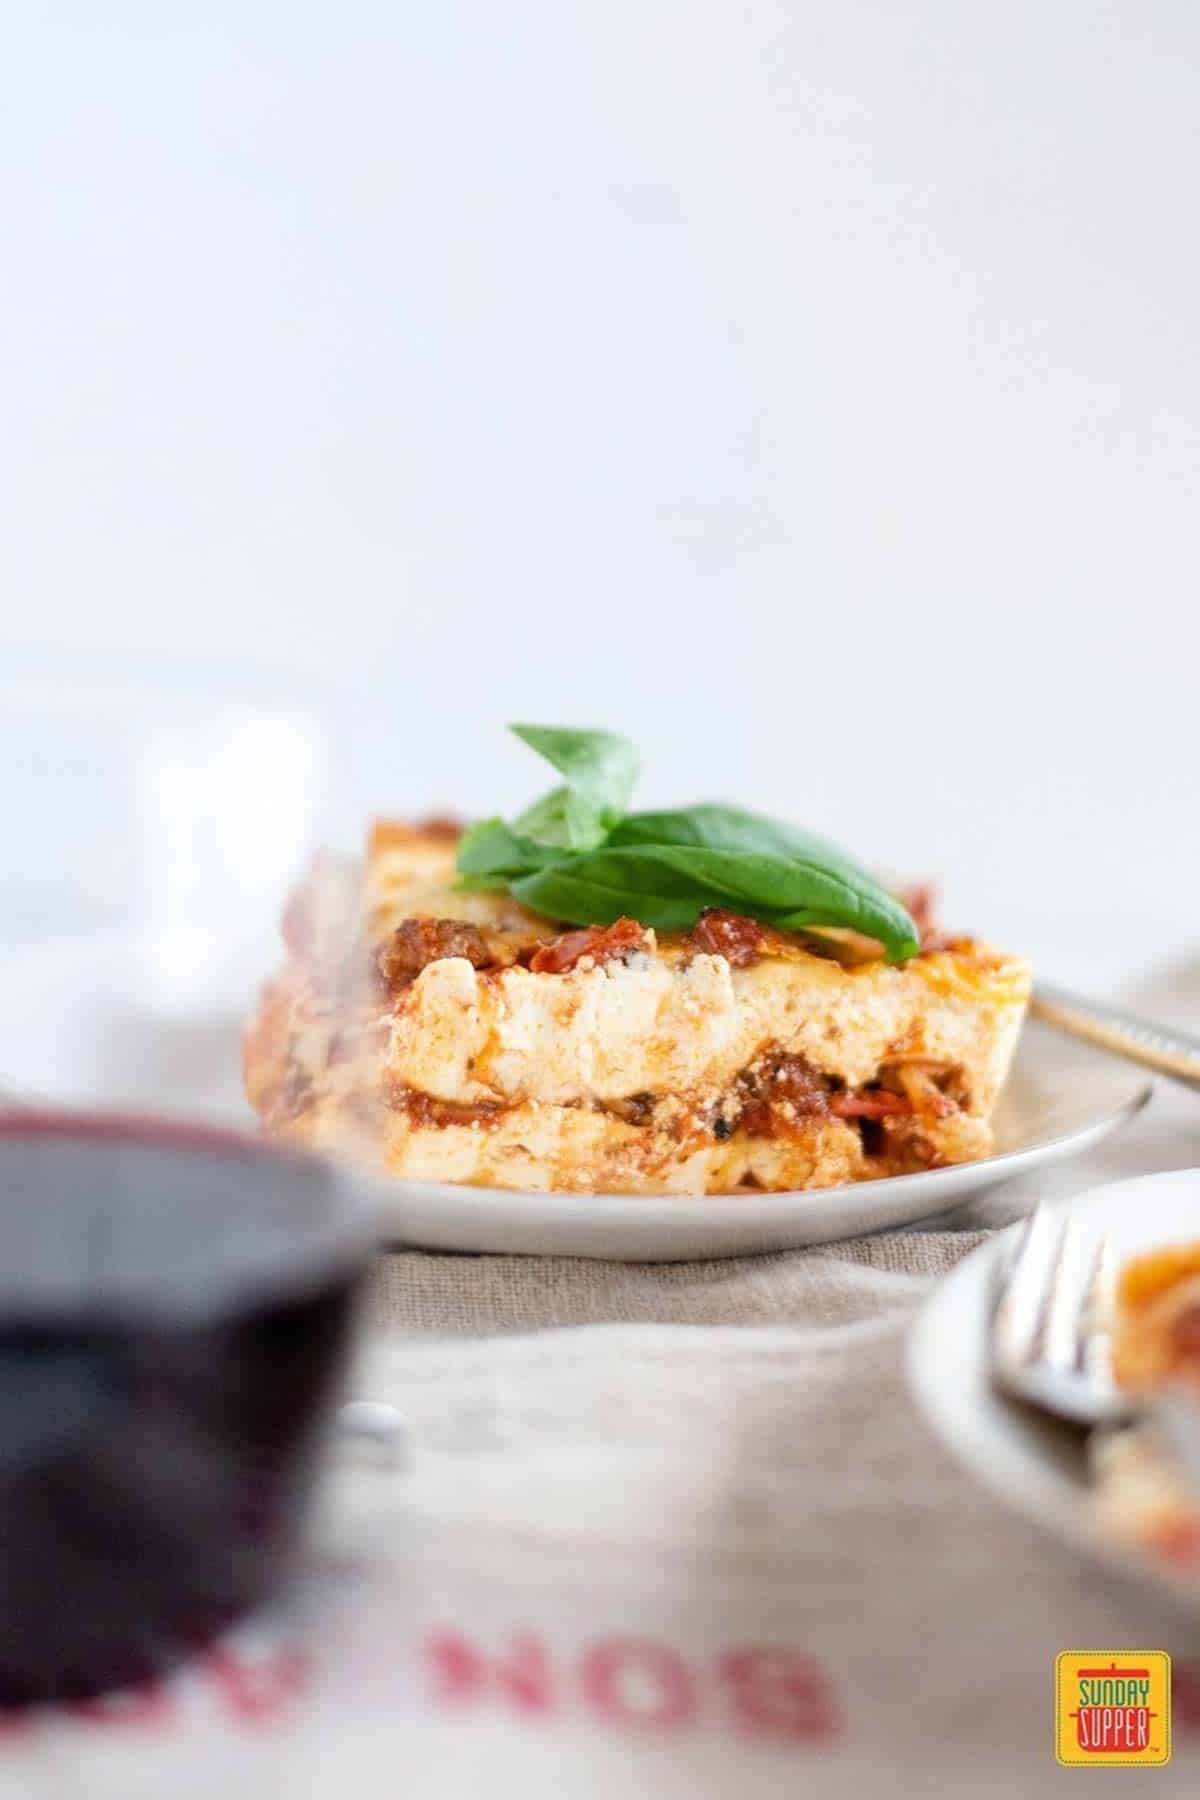 Lasagna for two and a glass of red wine